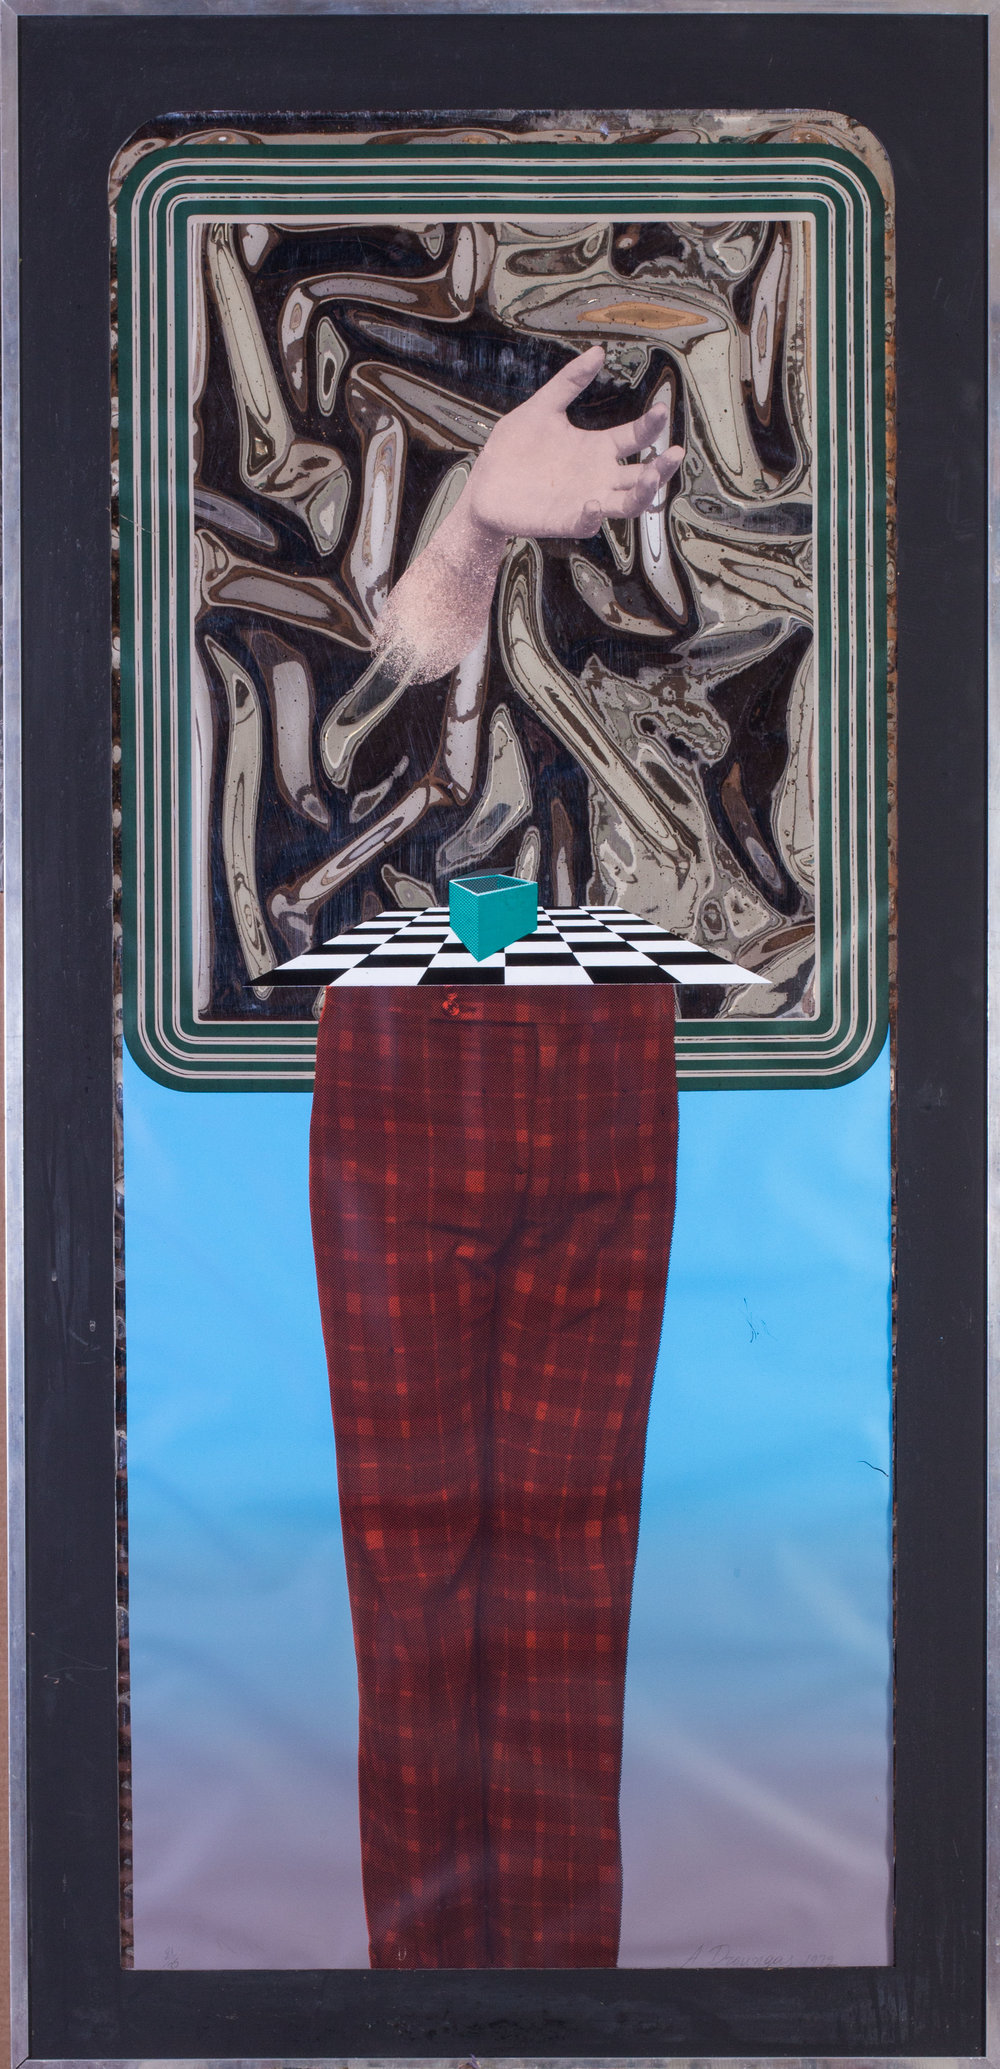 Achilleas Droungas (Greek, b.1940)     Trousers   Signed and dated 'A. Droungas, 1972' numbered 21/35   Silkscreen   59.3/4 x 28.3/4in. (152 x 73cm.)   From the Redfern Gallery, Cork Street   SOLD